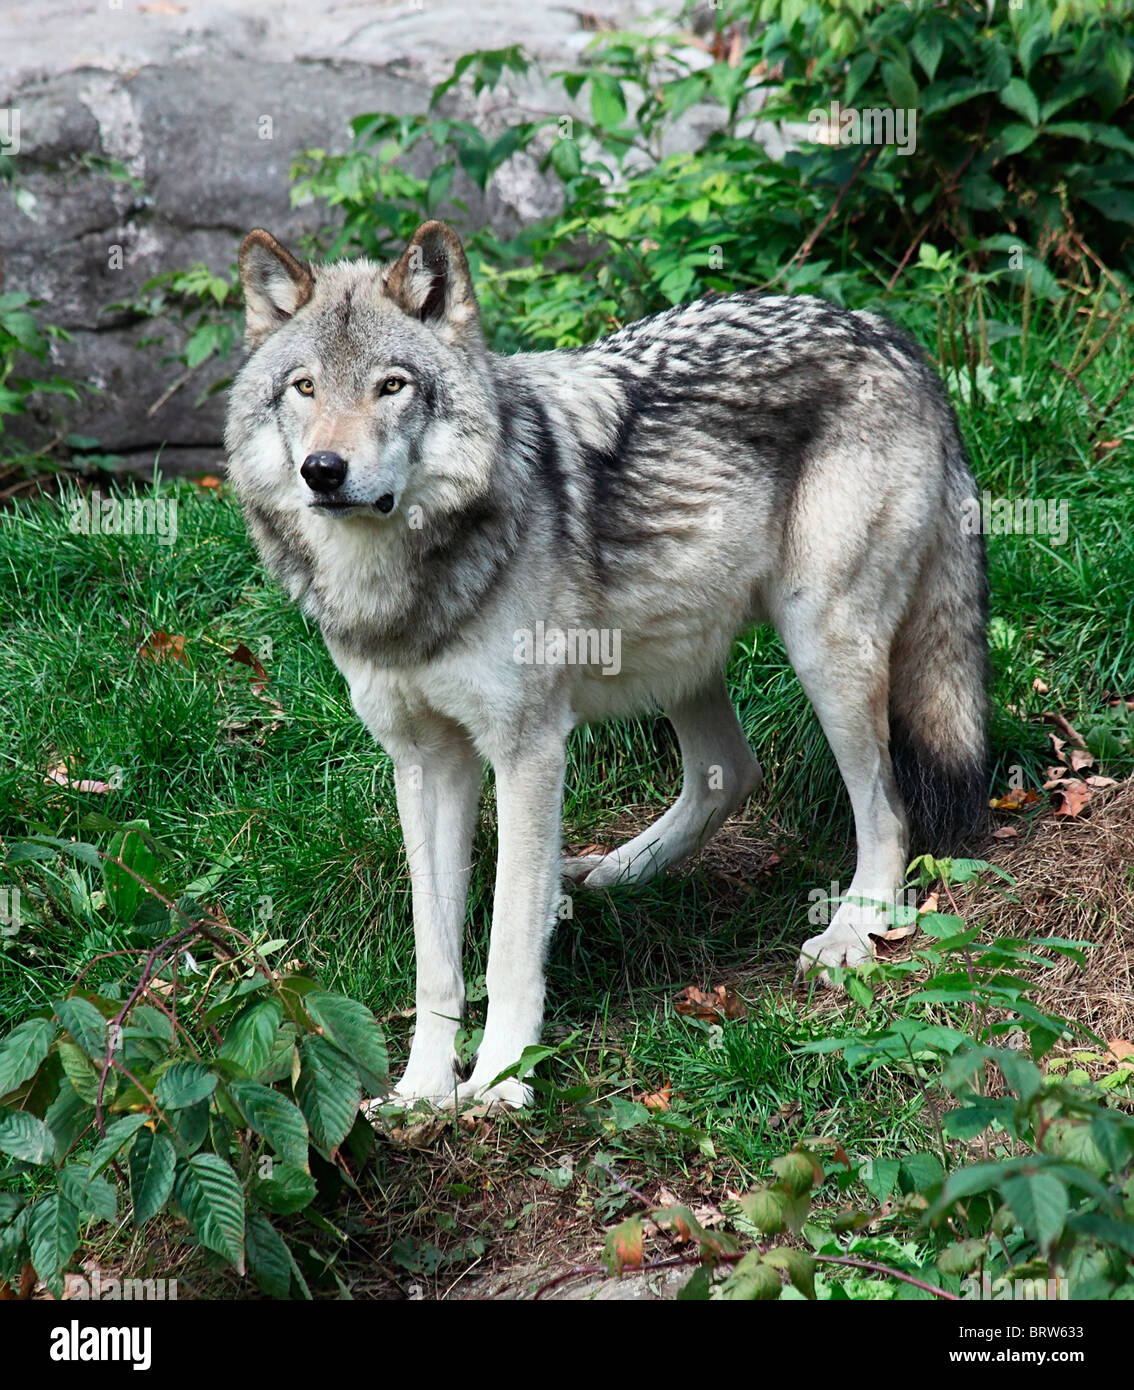 A gray wolf is standing and looking ahead - Stock Image